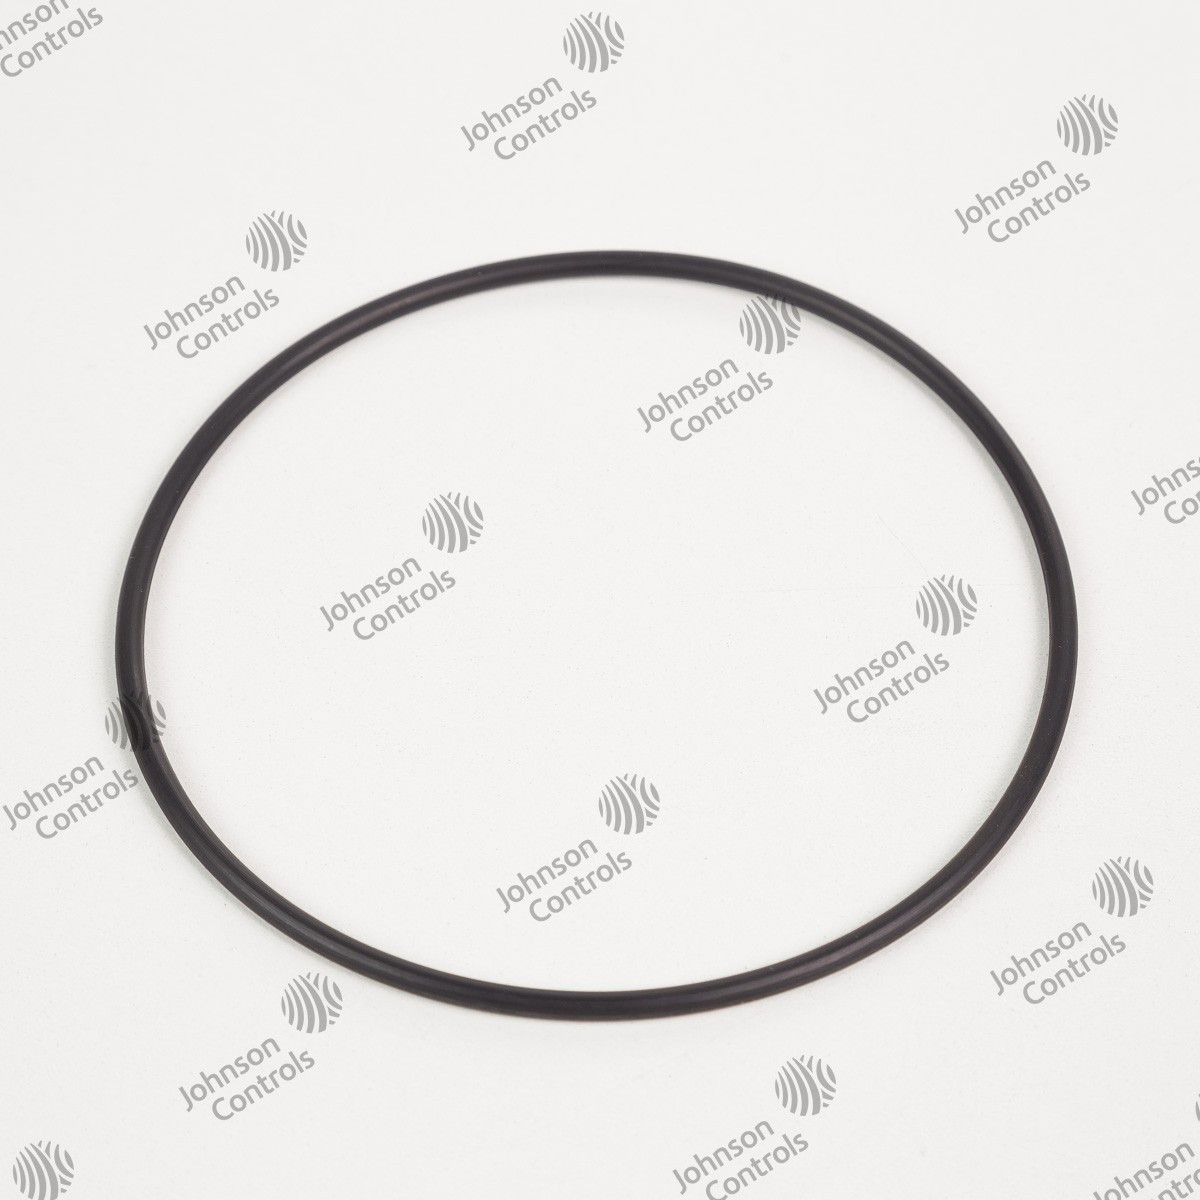 ANEL ORING 110,72/3,53 2347 - 1331+086